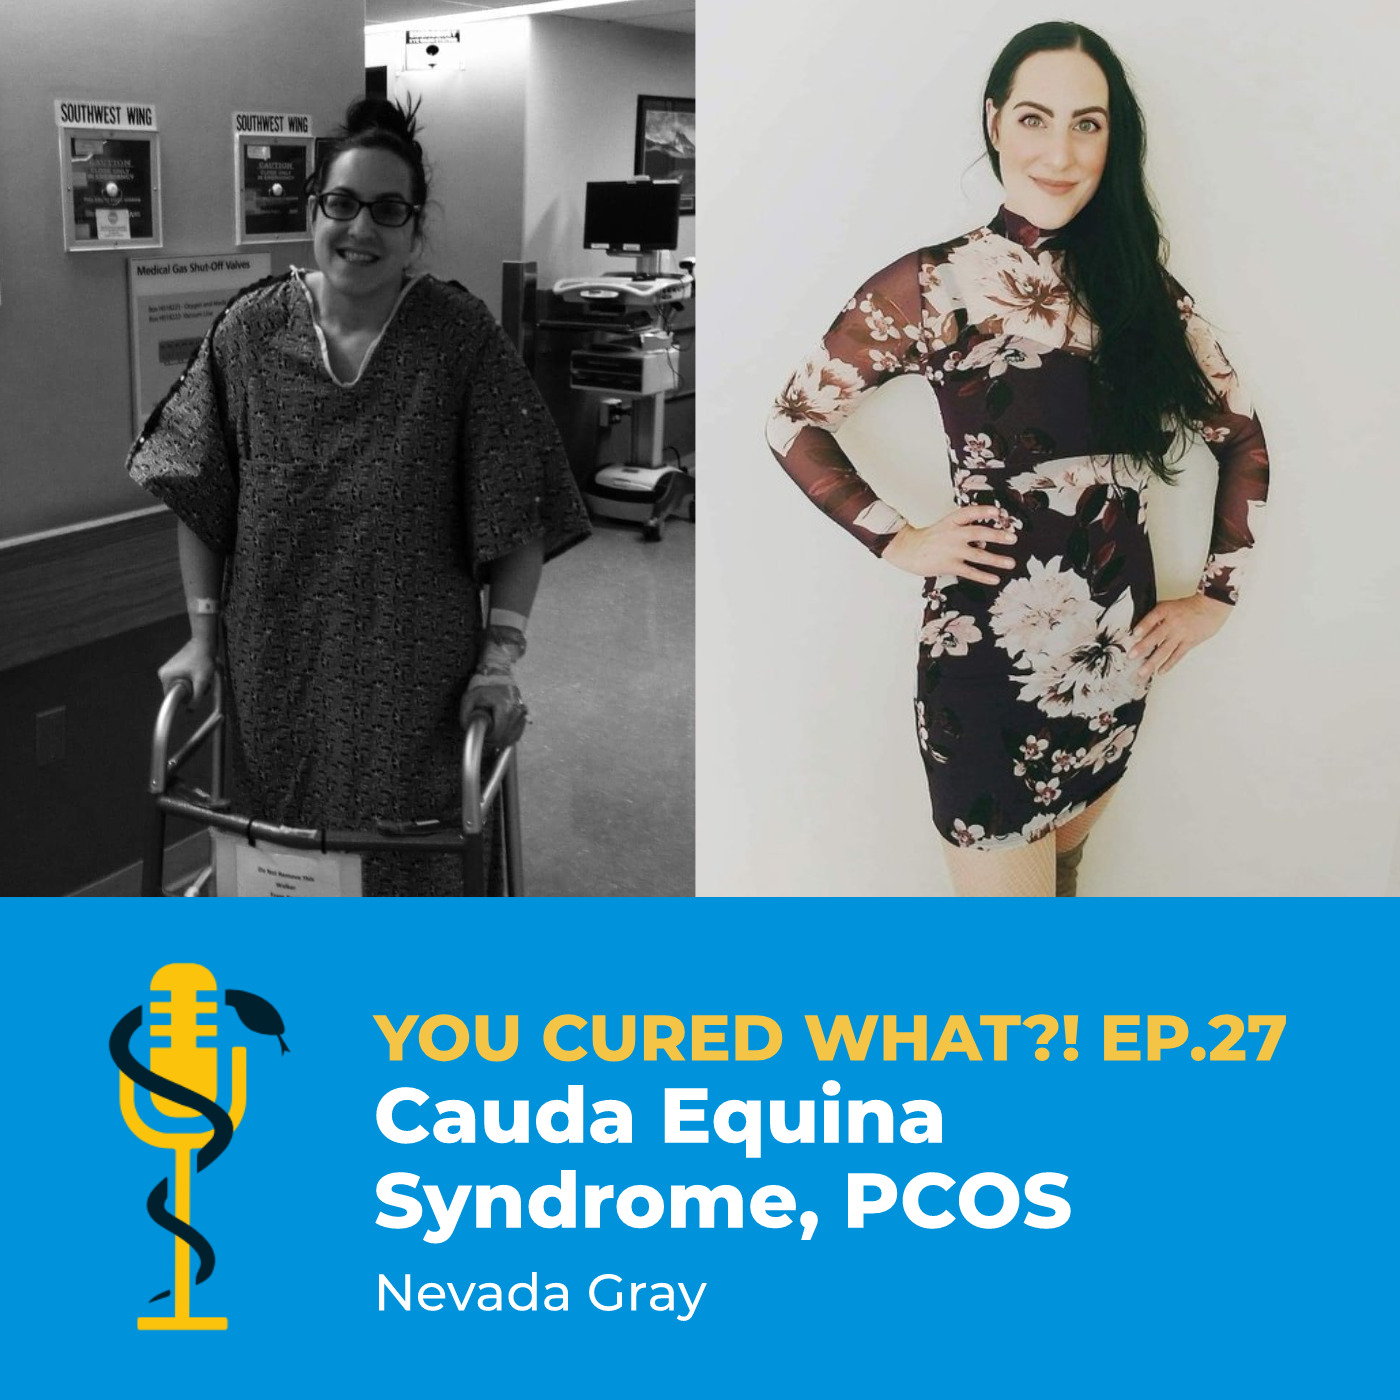 Ep.27: Cauda Equina Syndrome, PCOS with Nevada Gray